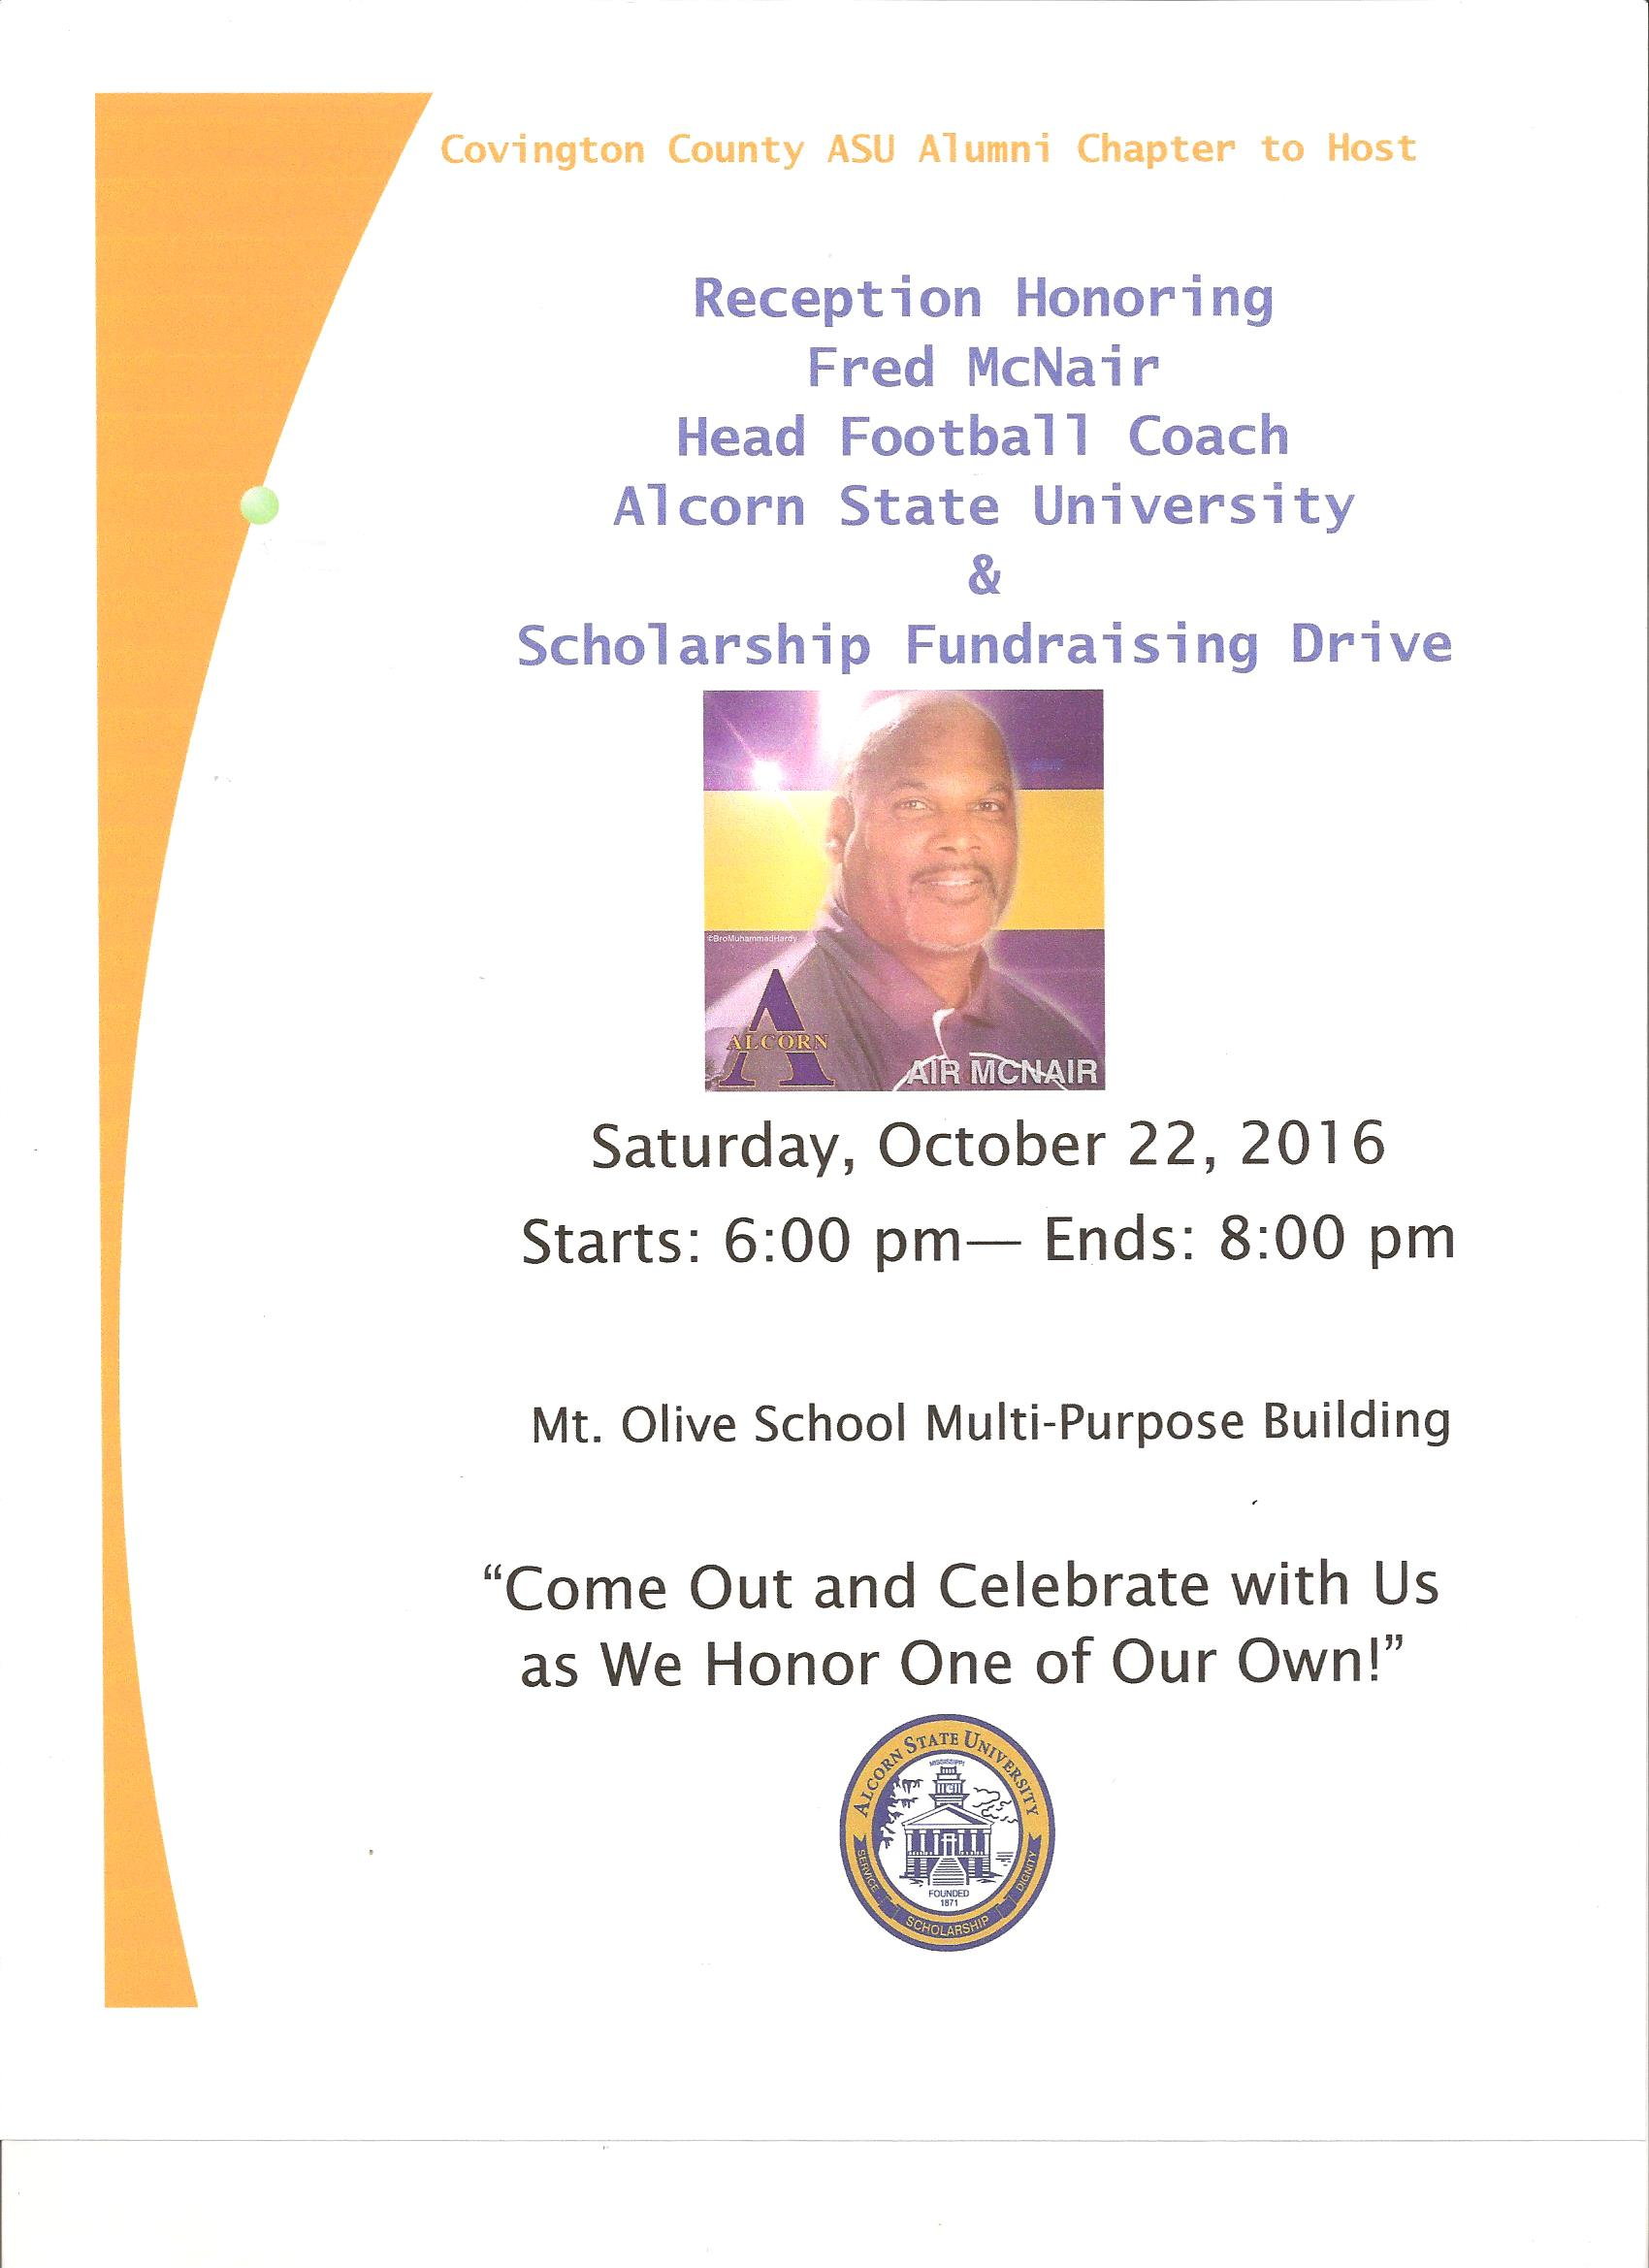 MOAC Reception to Honor Coach Fred McNair